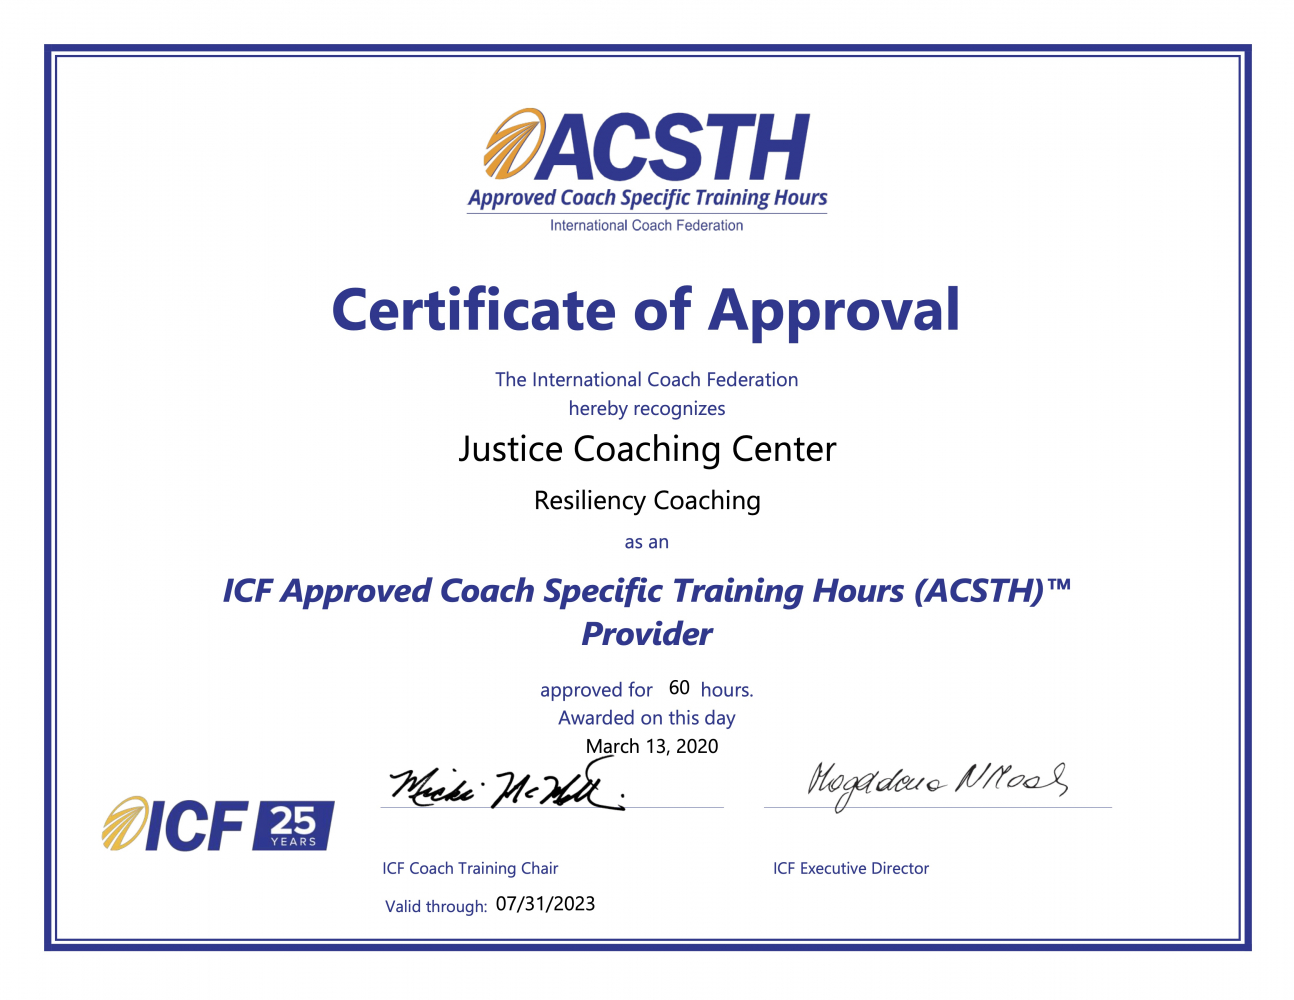 Justice Coaching Center ACSTH Certificate